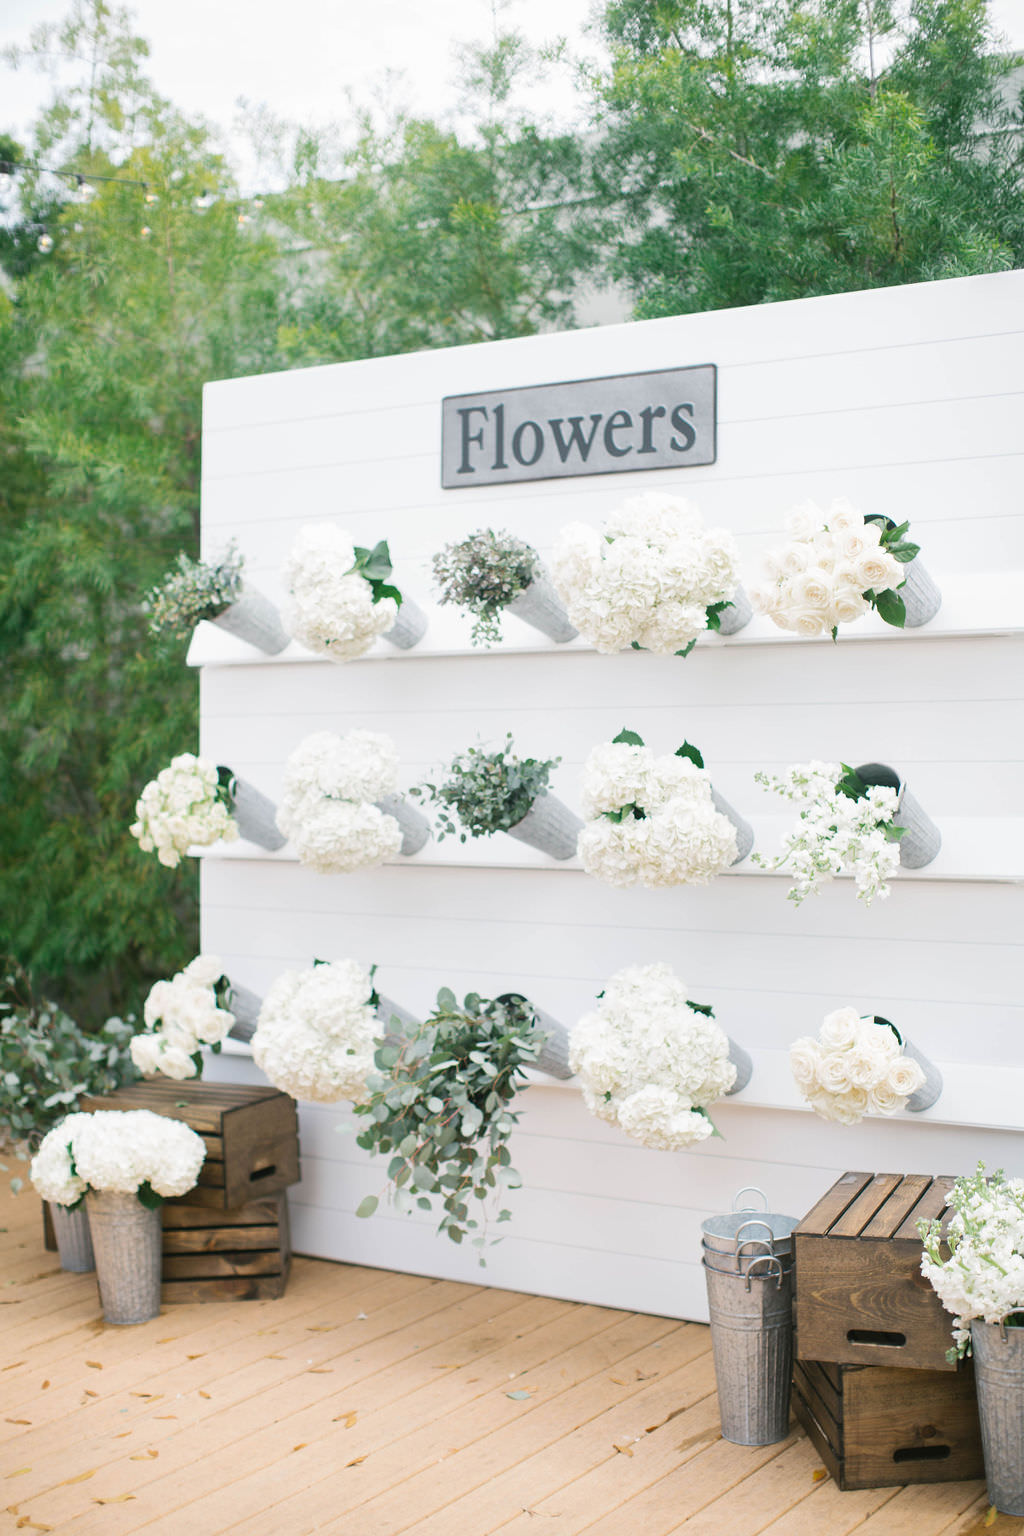 Magnolia Market Southern Inspired Tampa Bridal Shower | Joanna Gaines Inspired Bridal Shower | Create Your Own Bouquet Flower Wall with Eucalyptus and White Florals | Tampa Wedding Florist Bruce Wayne Florals | Tampa Wedding and Party Planner Parties A'La Carte